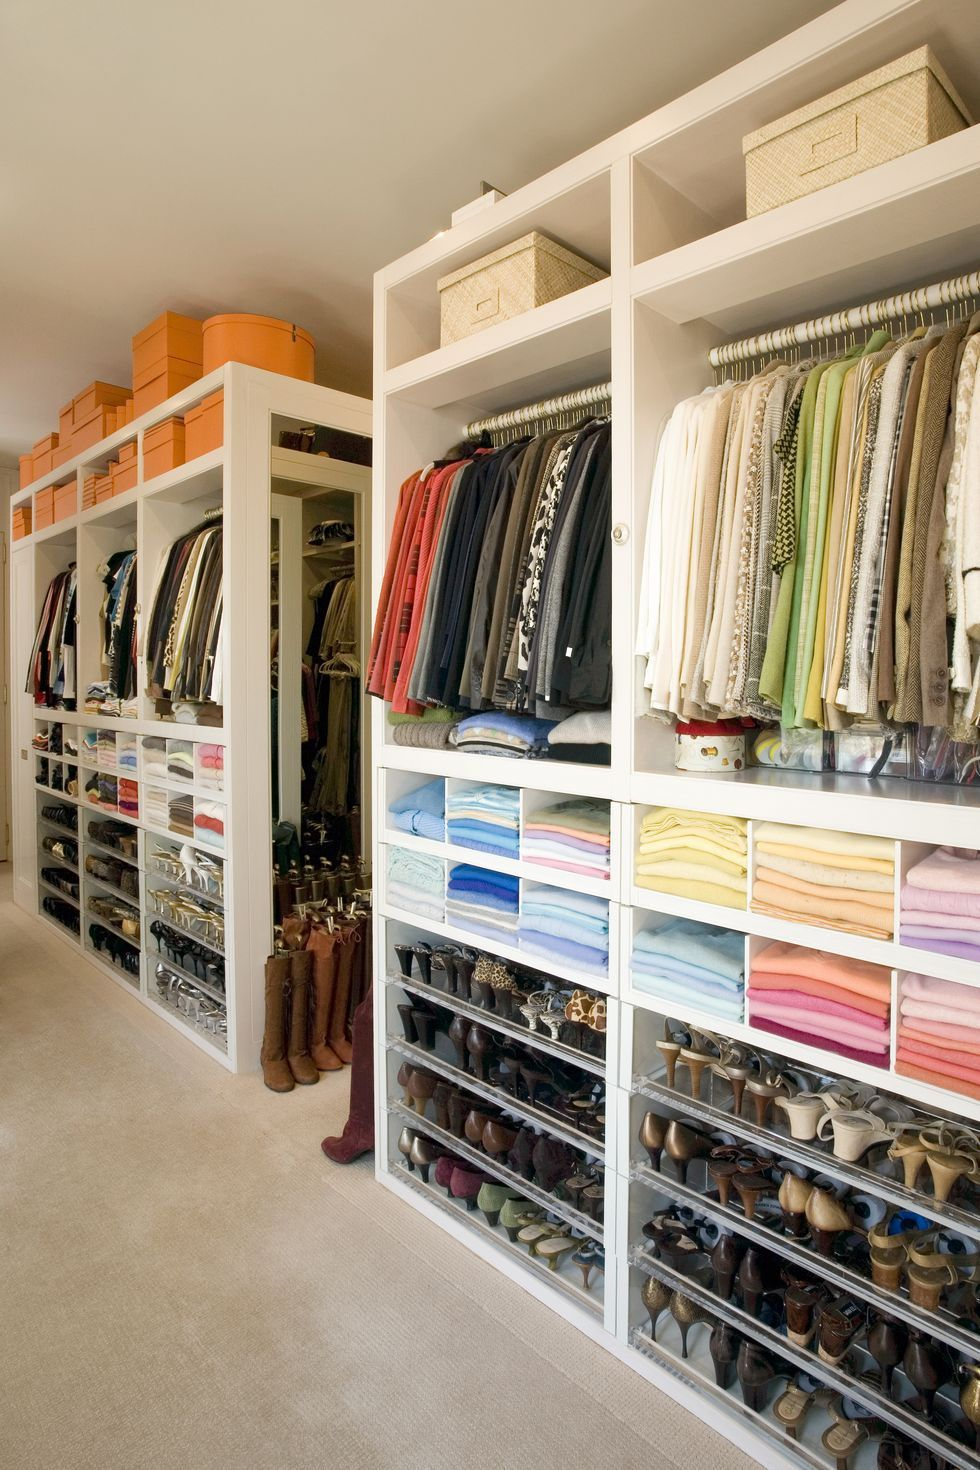 9 Foolproof Tips for Organizing Your Closet